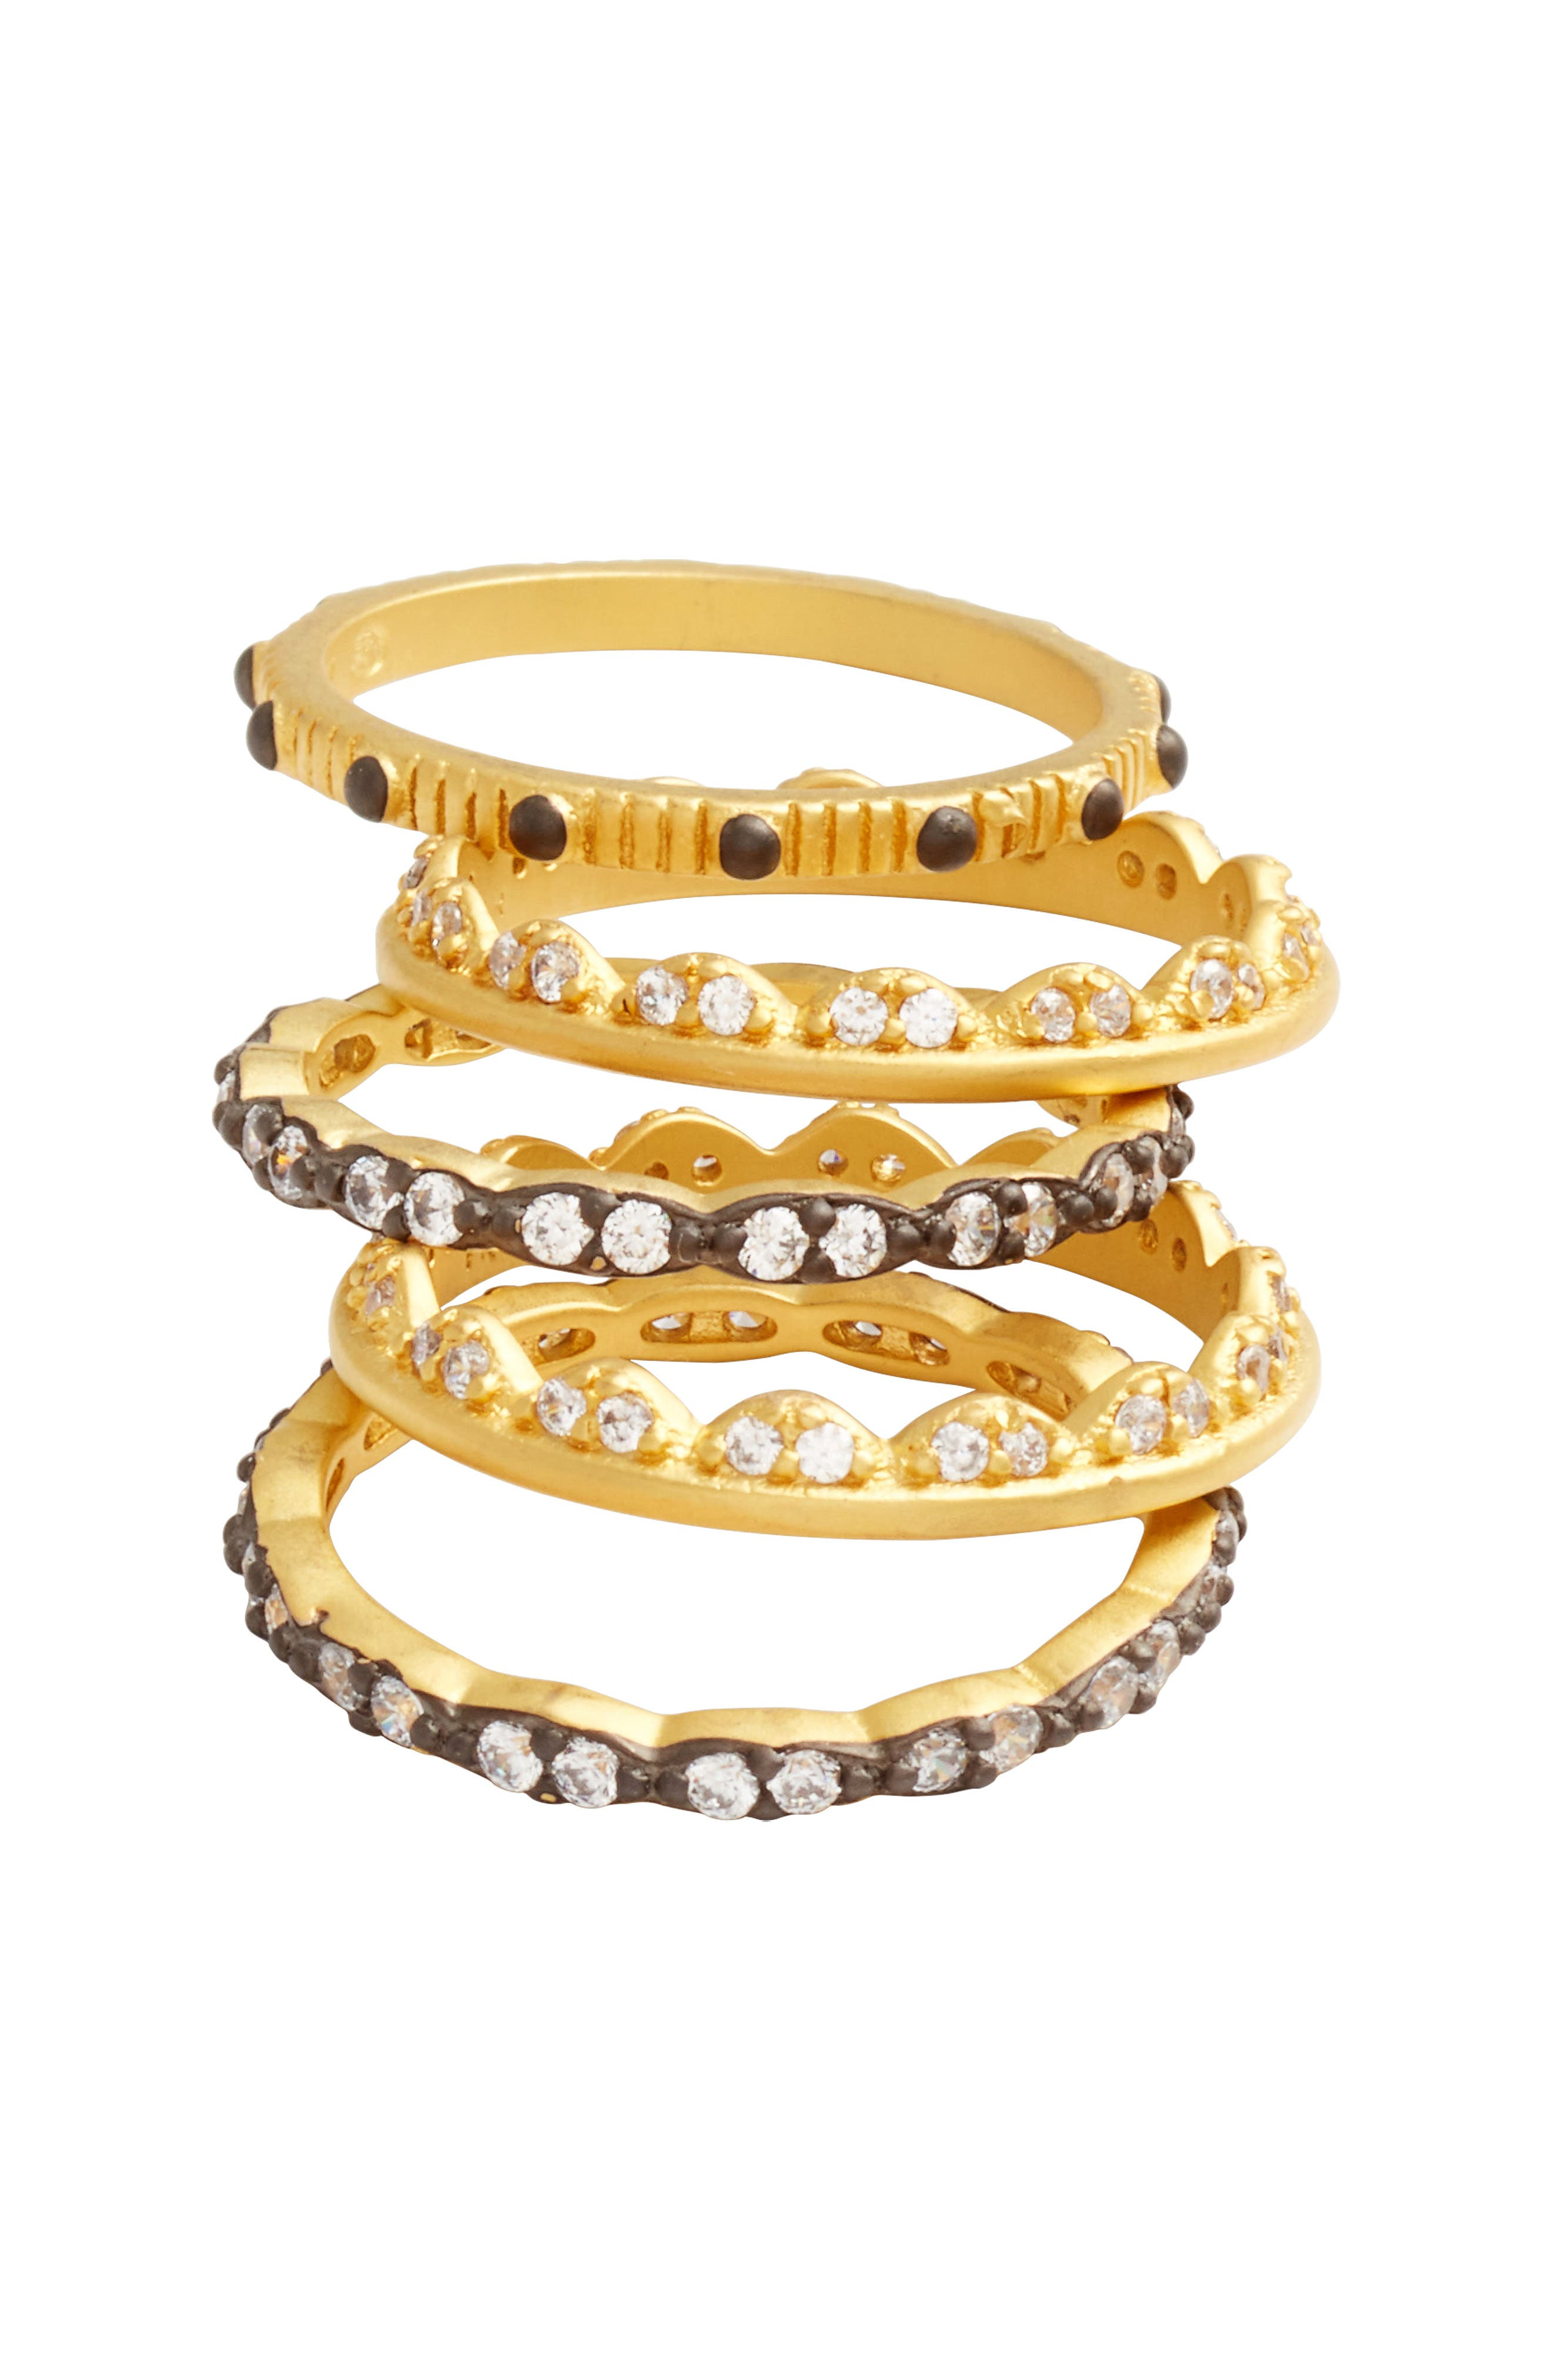 Set of 5 Stack Rings,                             Alternate thumbnail 4, color,                             710